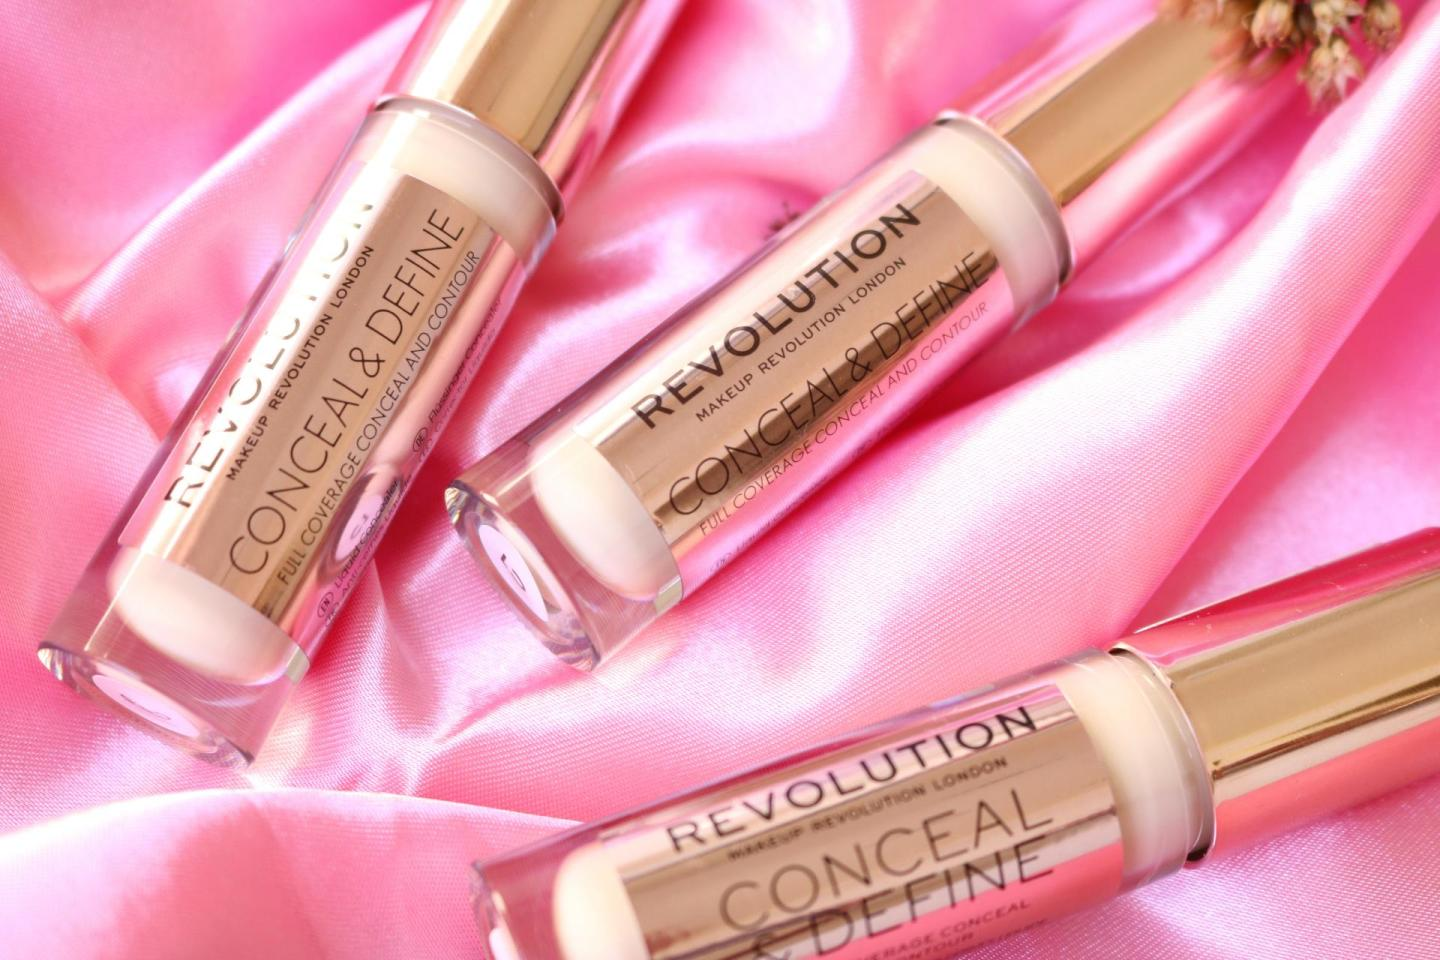 Makeup Revolution London Conceal and Define